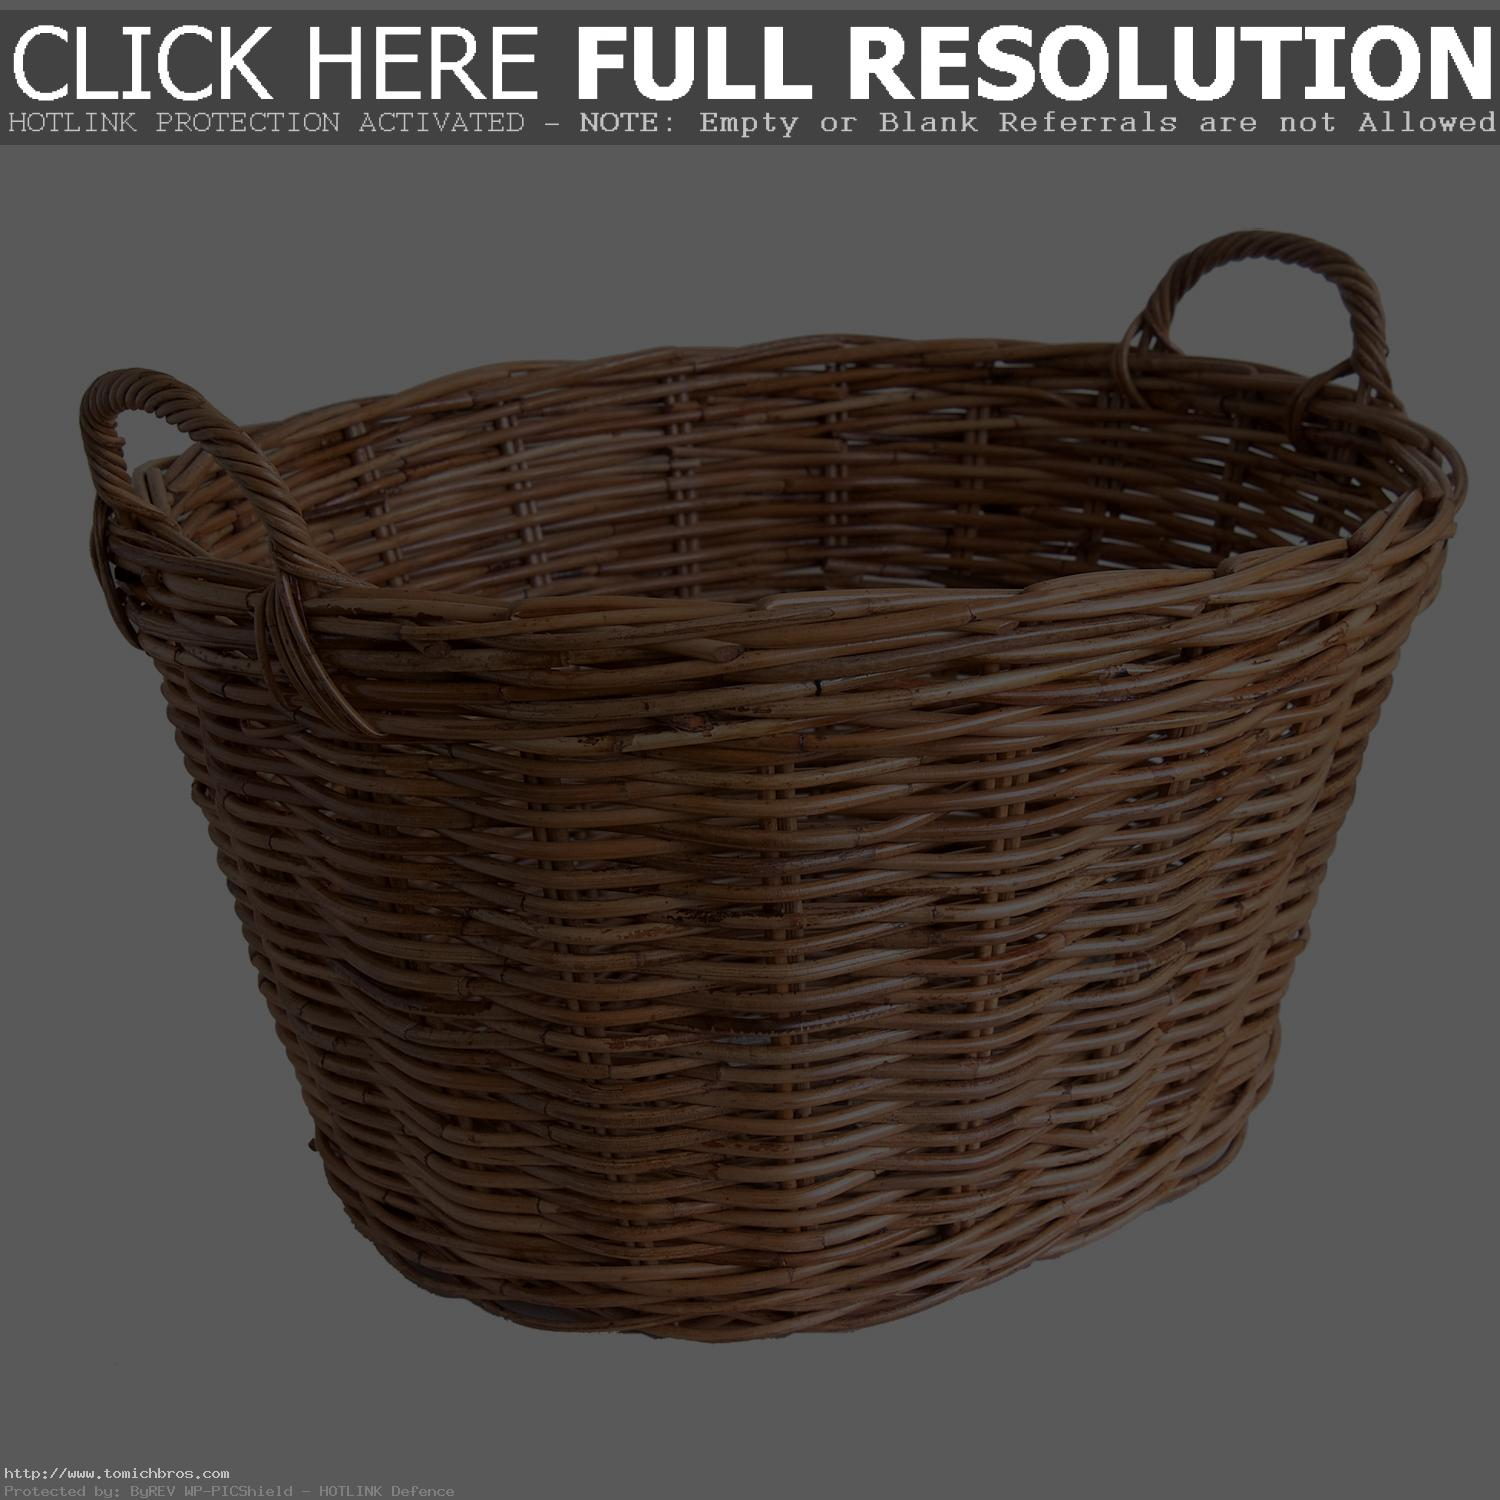 Wicker Basket Png Hdpng.com 1500 - Wicker Basket, Transparent background PNG HD thumbnail